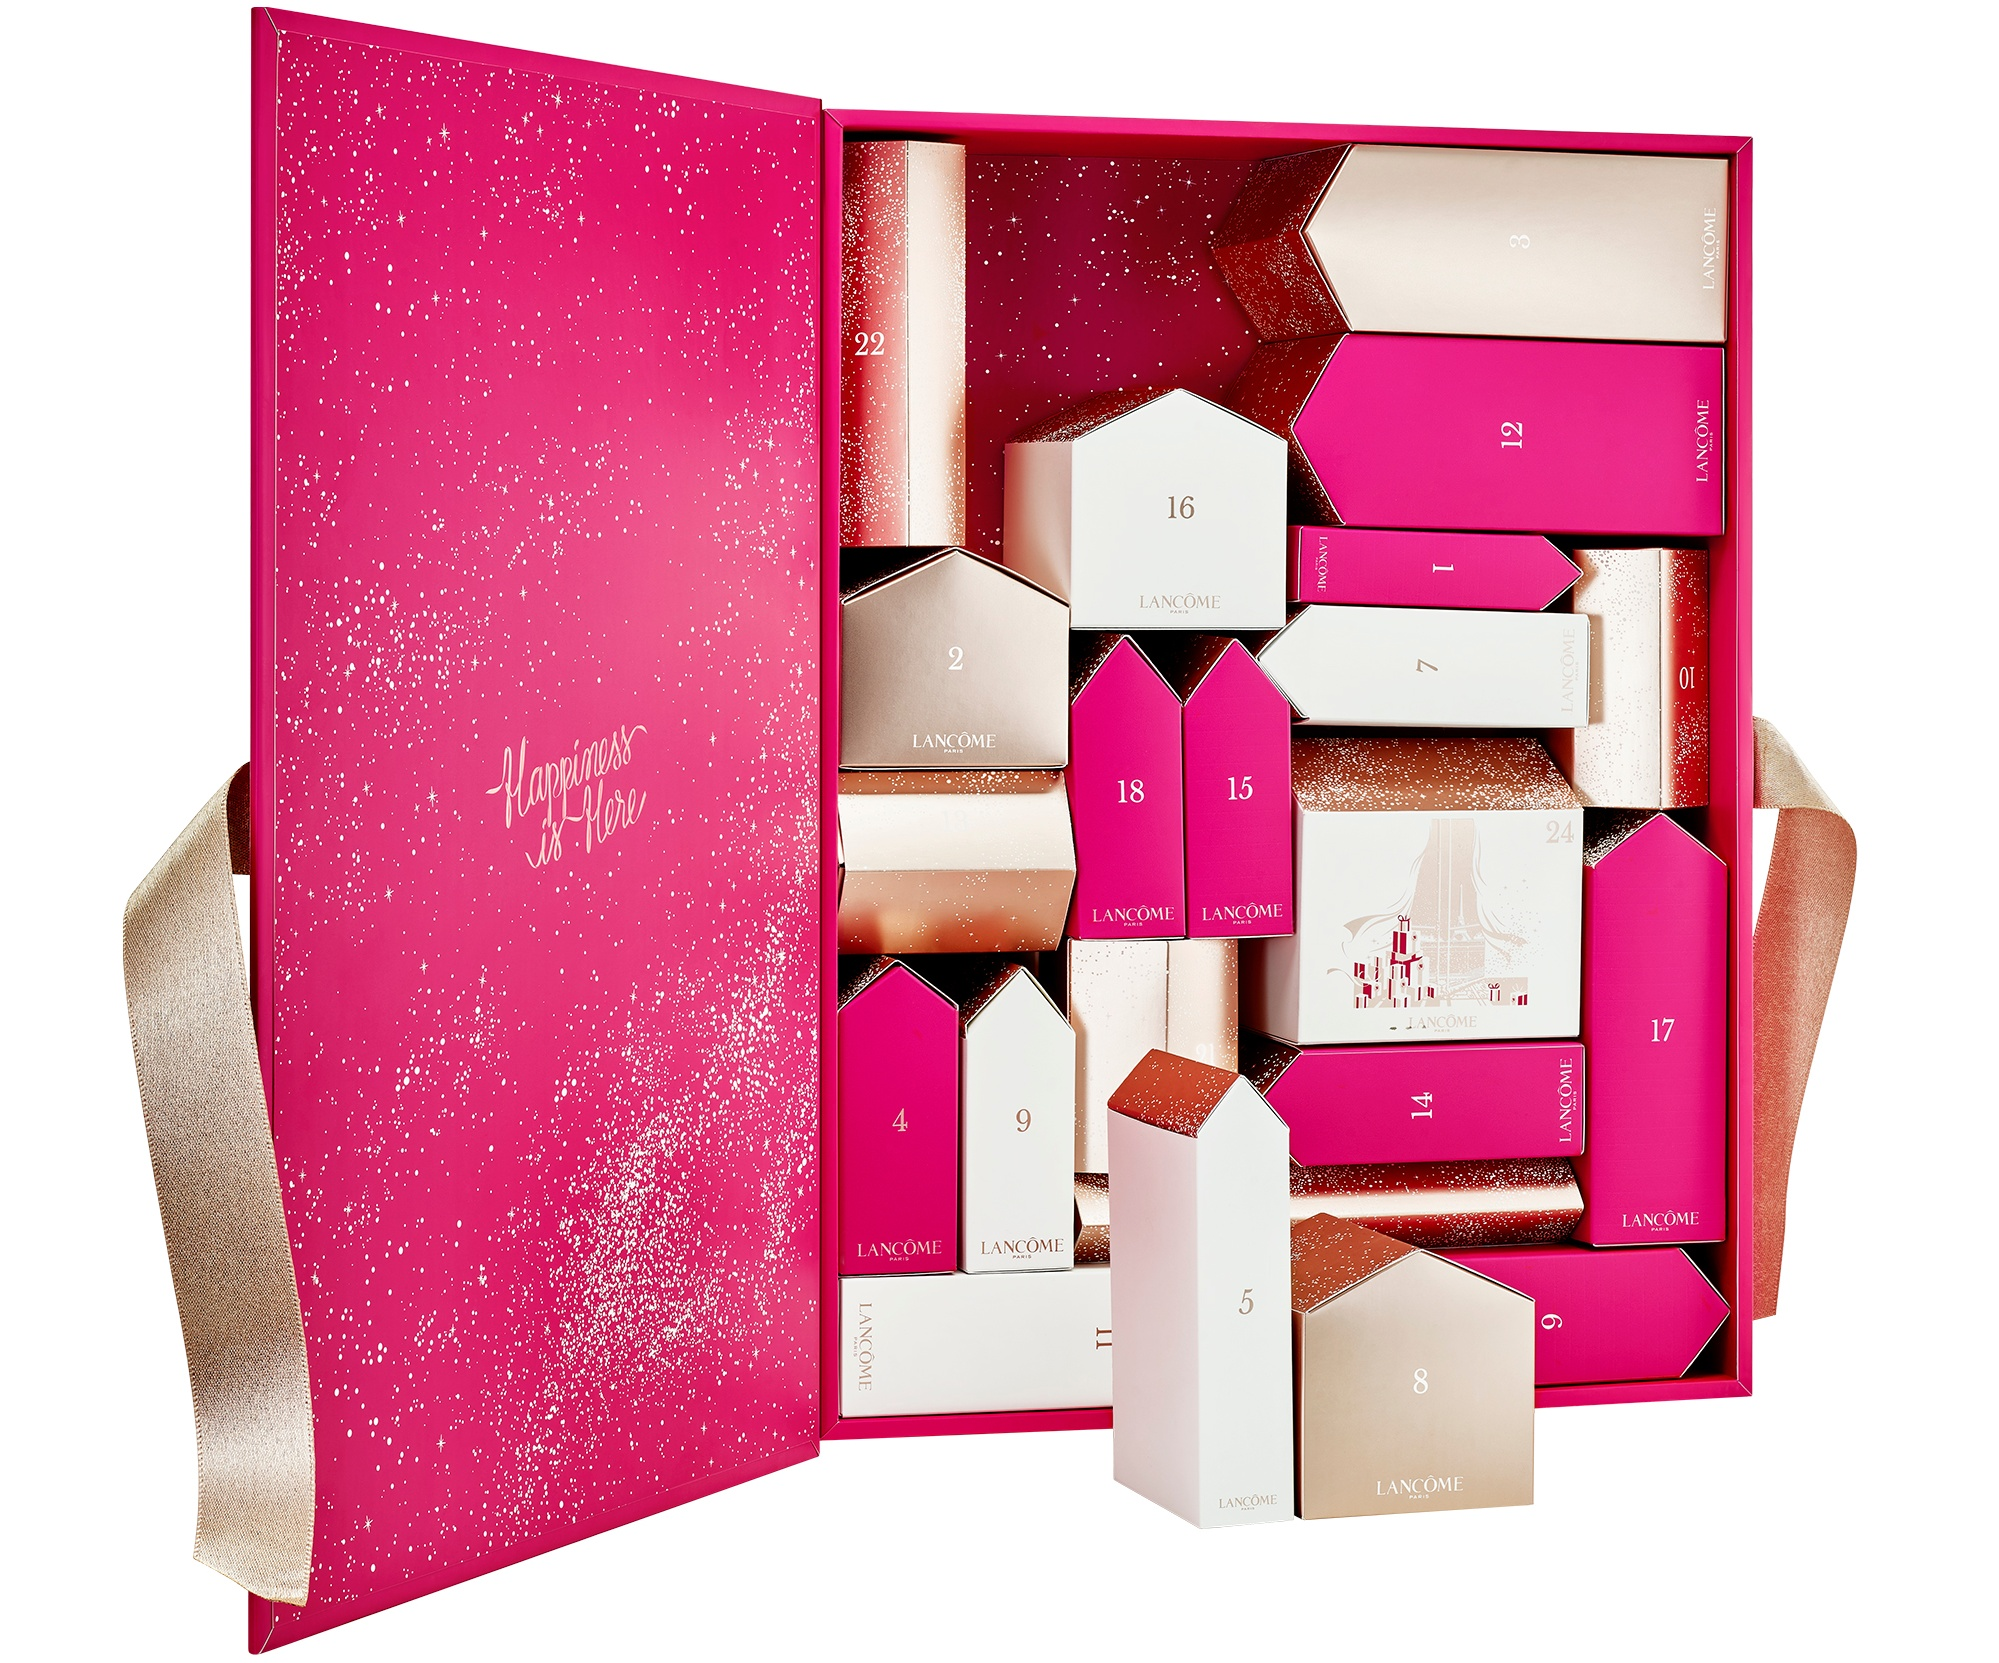 Lancome advent calendar 2019 - The LDN Diaries